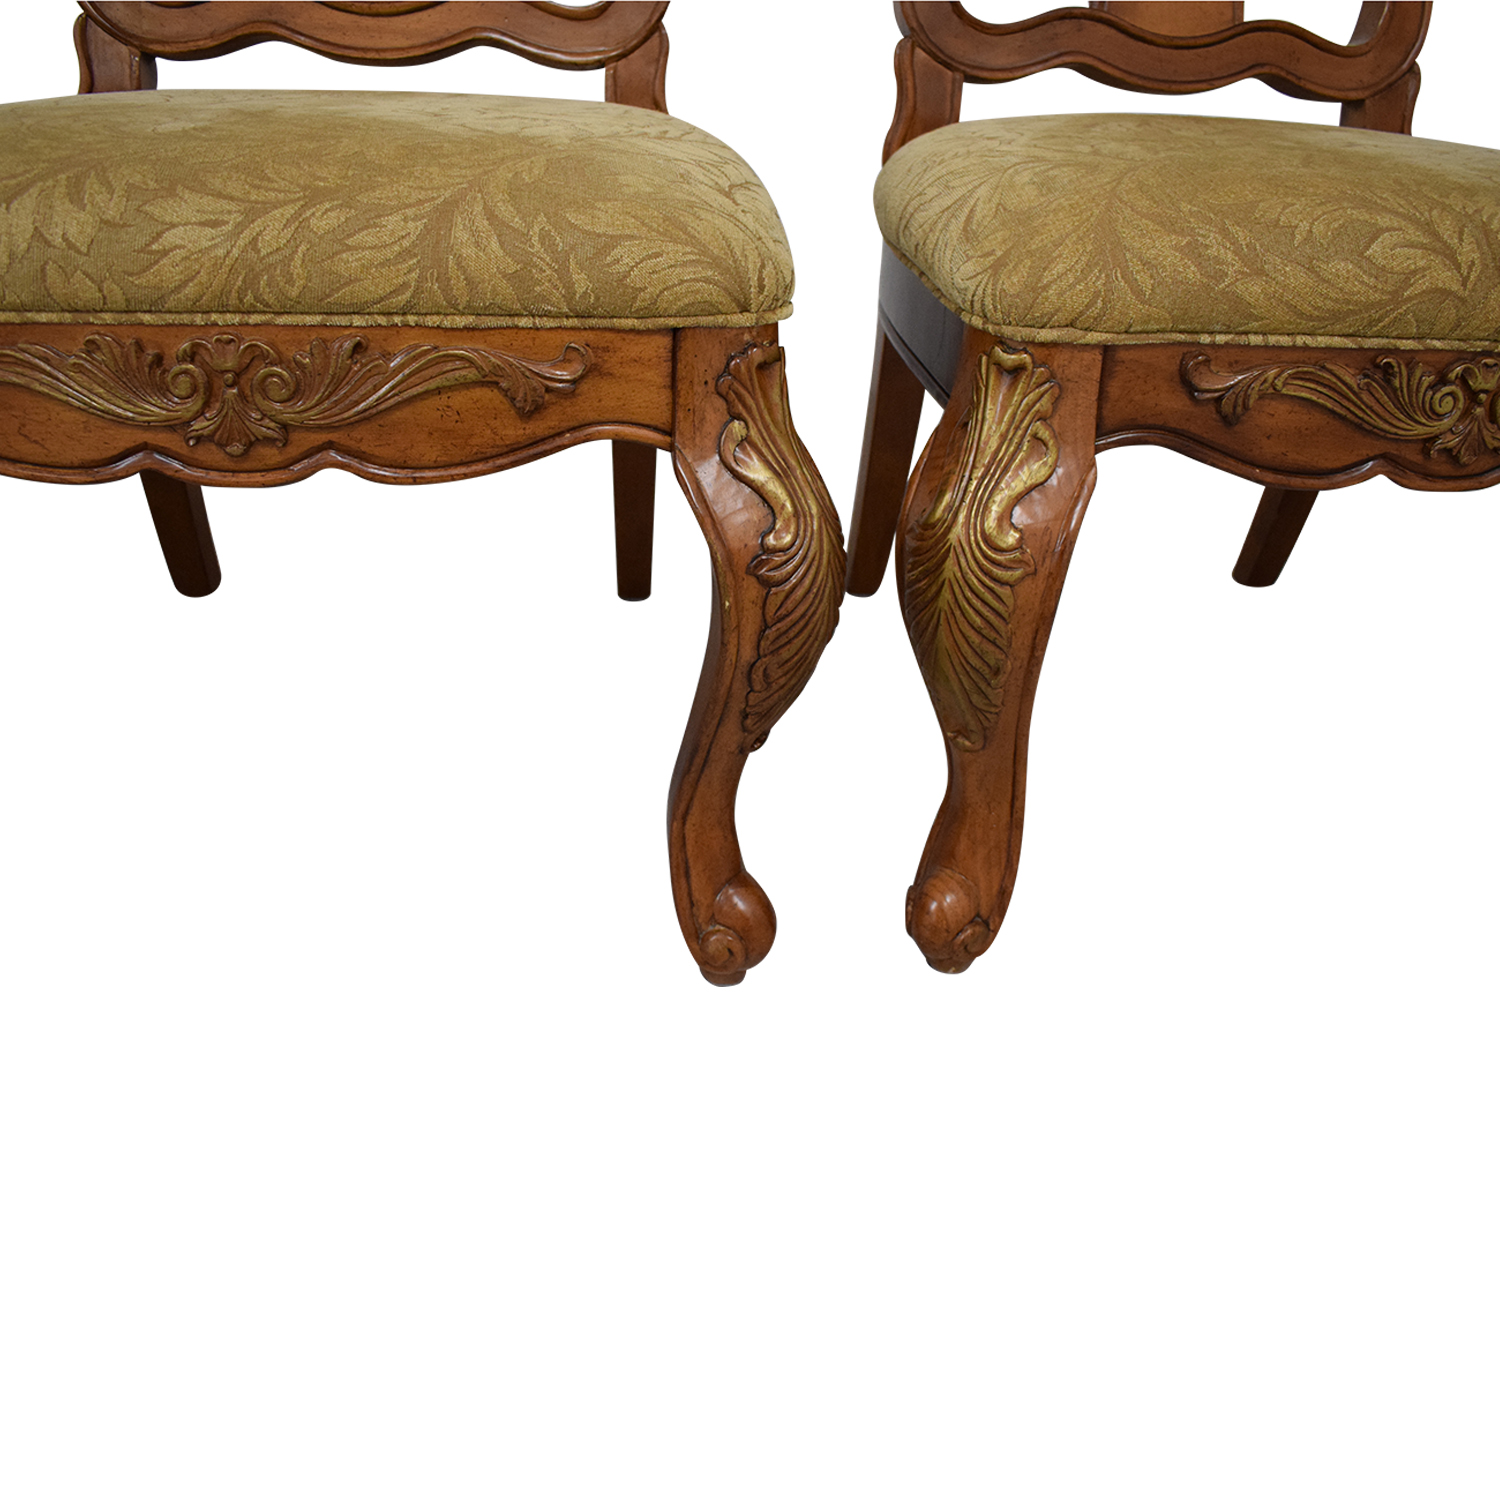 Raymour & Flanigan Raymour & Flanigan Carved Dining Chairs